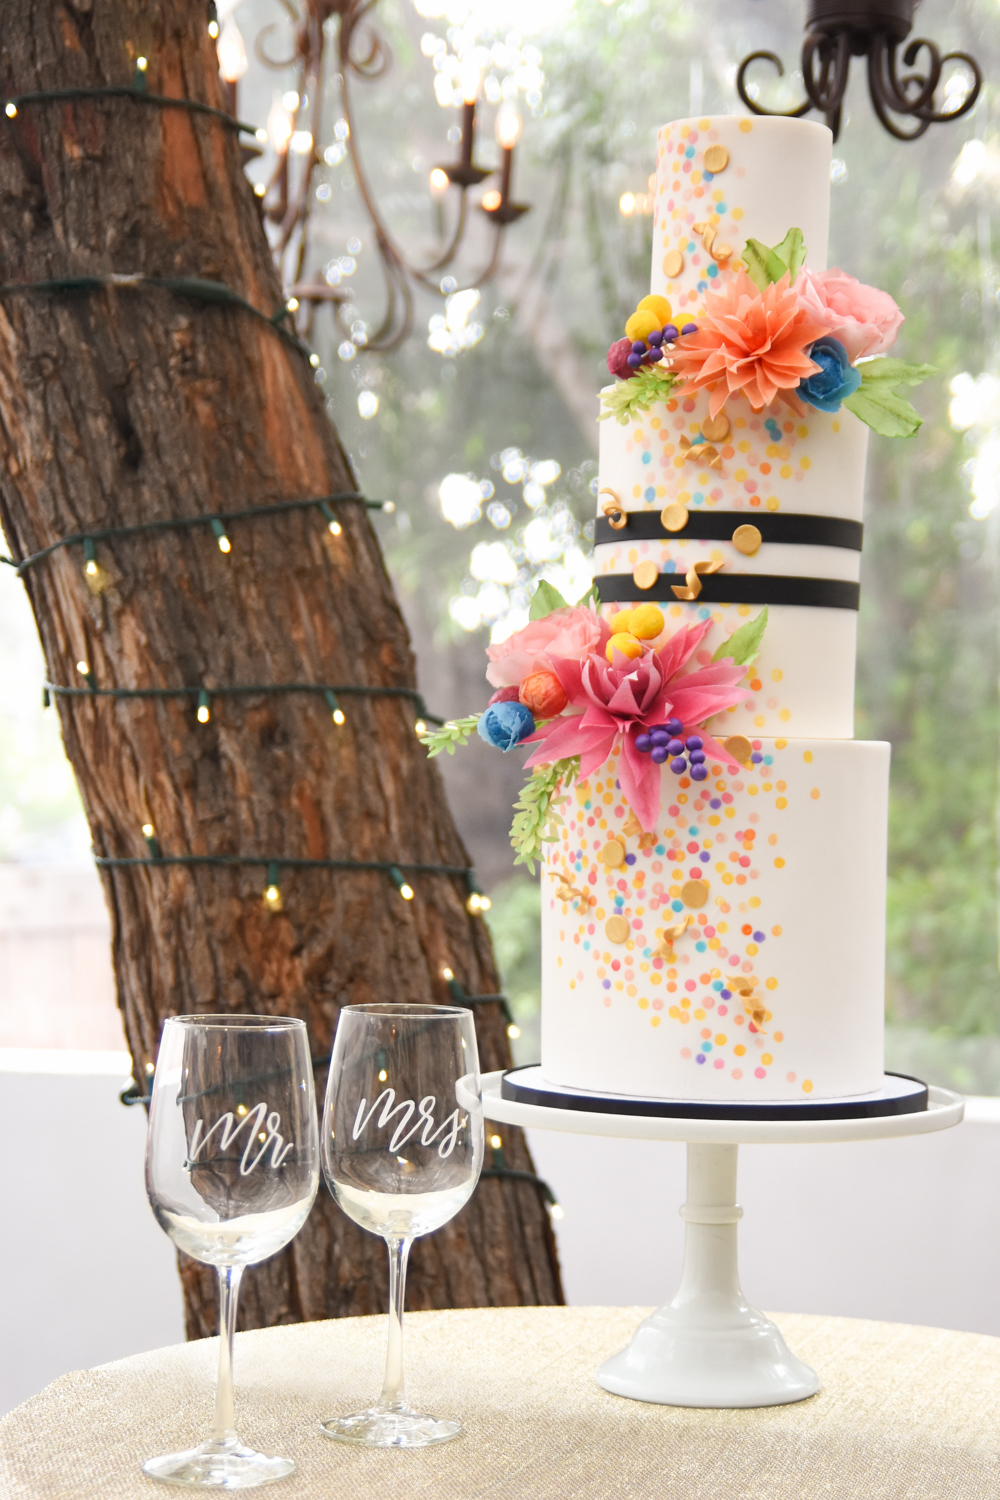 Glendale-Wedding-Photographer-Blog-Jade-Elora-Blog-Victorian-Santa-Monica-13.jpg